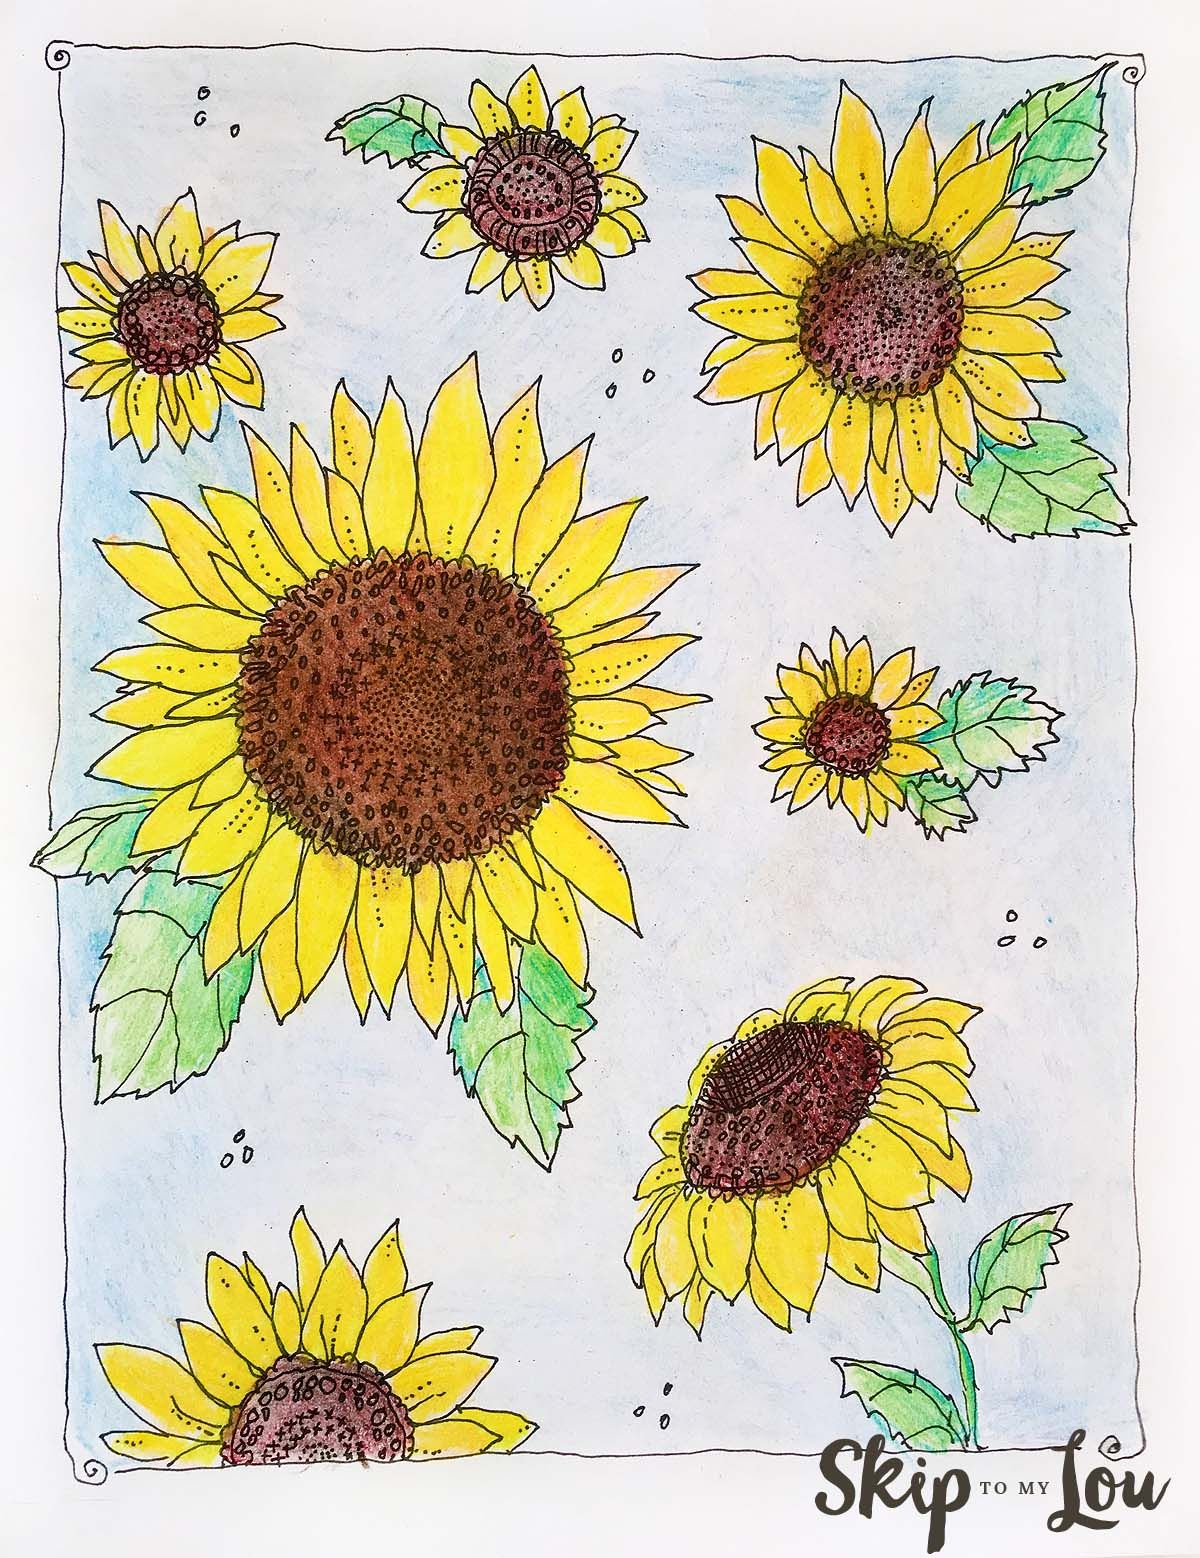 Kansas Day Sunflower Coloring Page | Free coloring, Kansas and ...